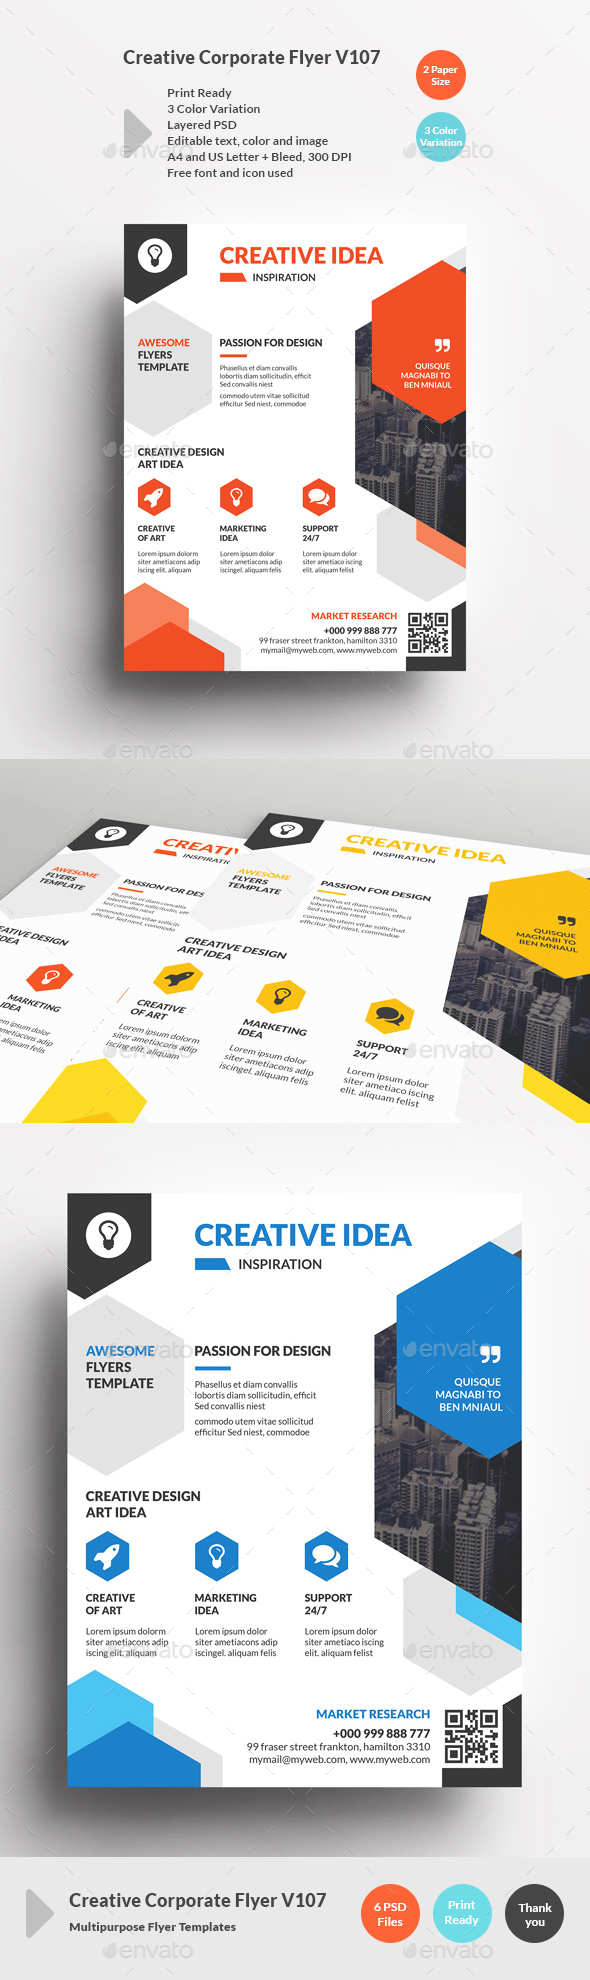 Creative Corporate Flyer V107 - Corporate Flyers